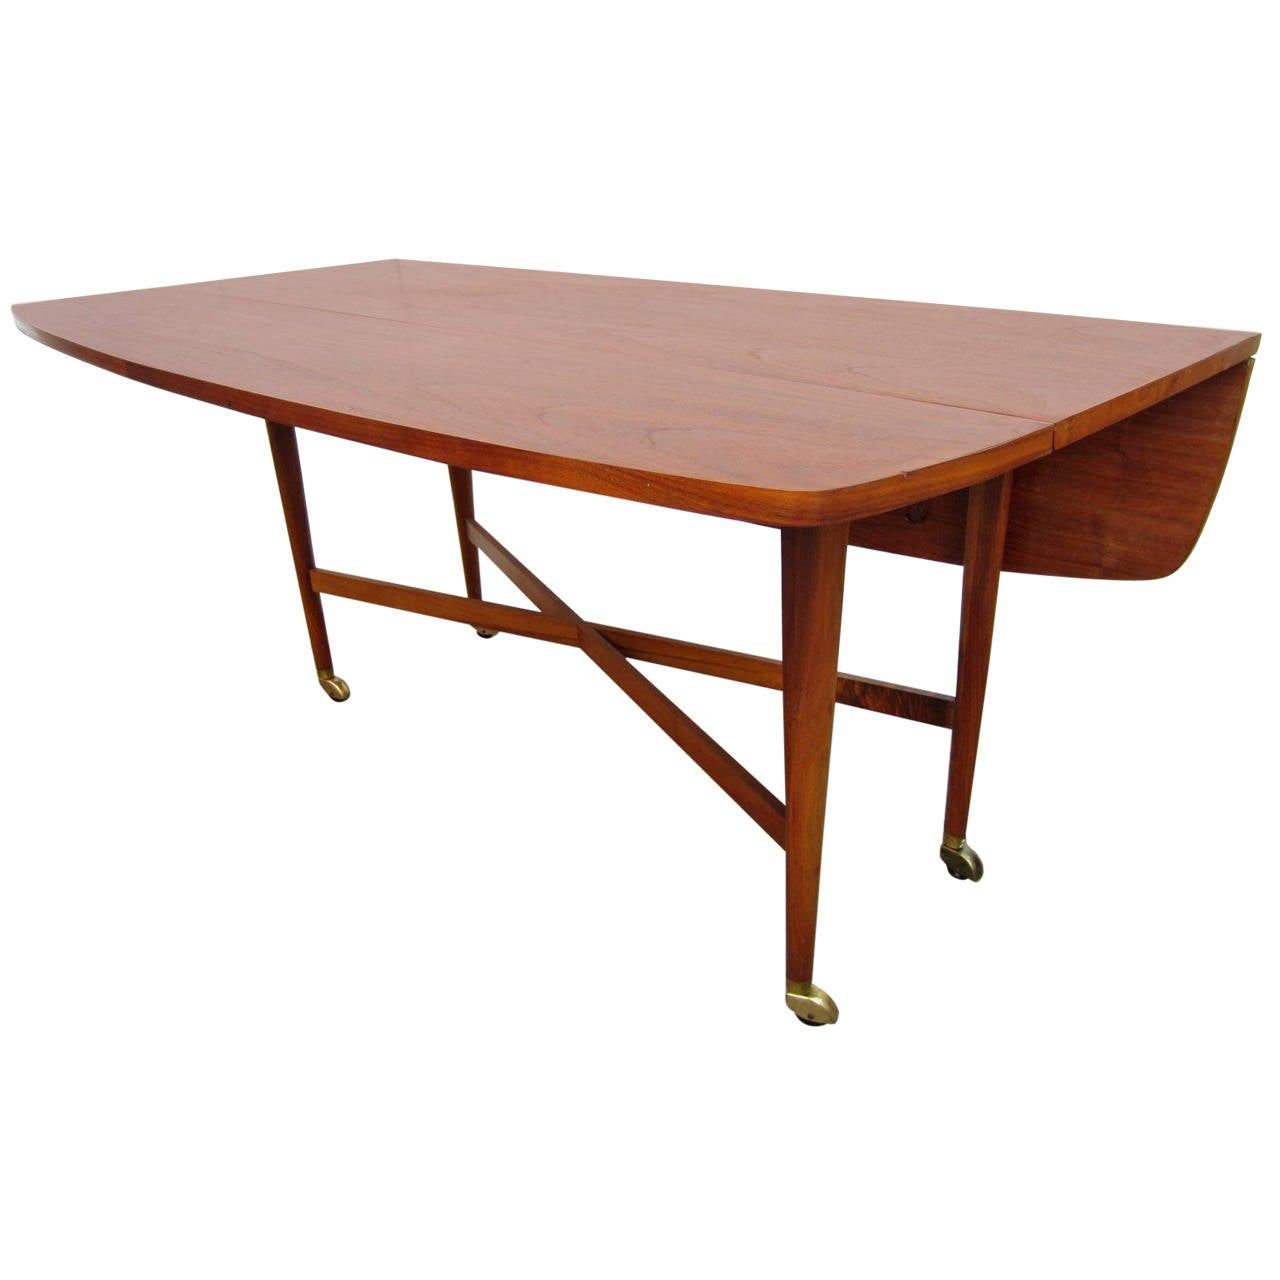 1960 drexel declaration kipp stewart mcdougell drop-leaf sofa table